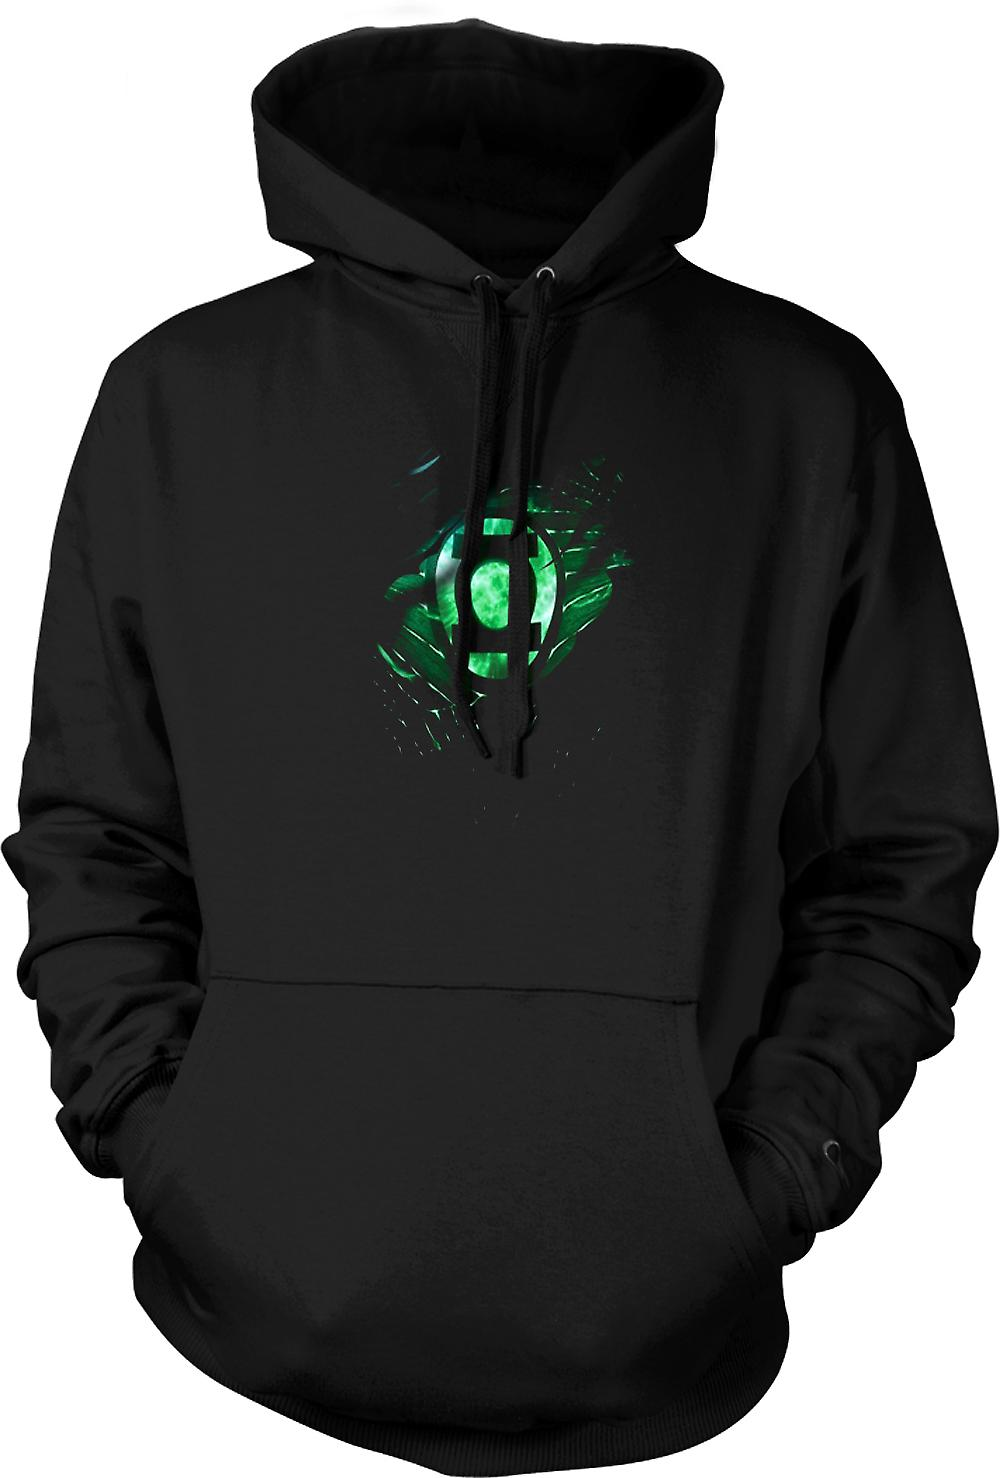 Mens Hoodie - The Green Lantern - Superhero Ripped Design